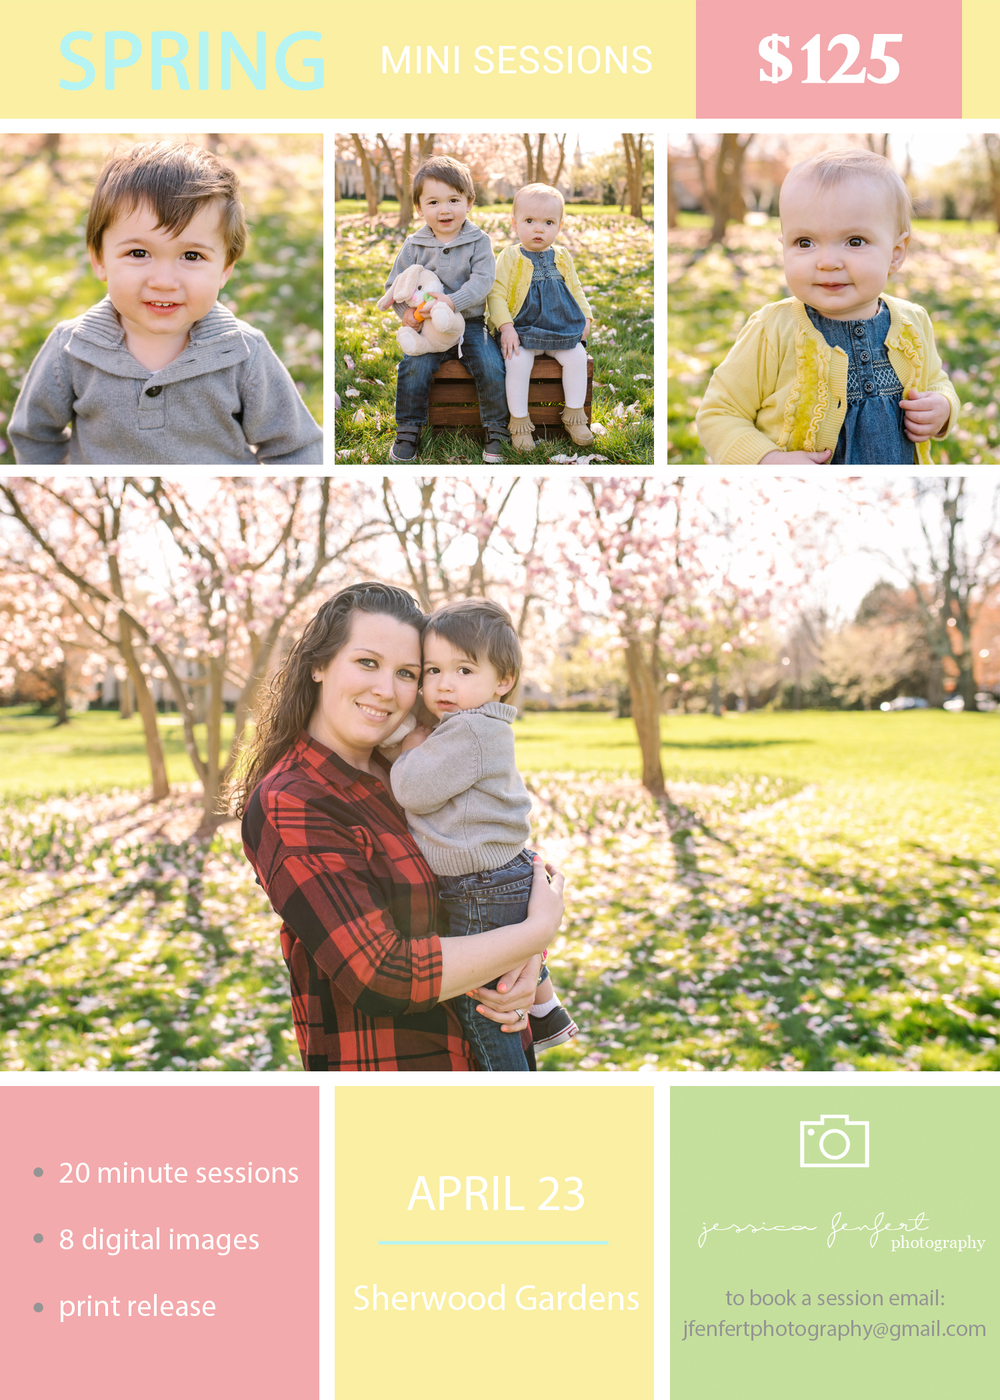 Spring Mini Sessions 2016 Sherwood Gardens Baltimore MD